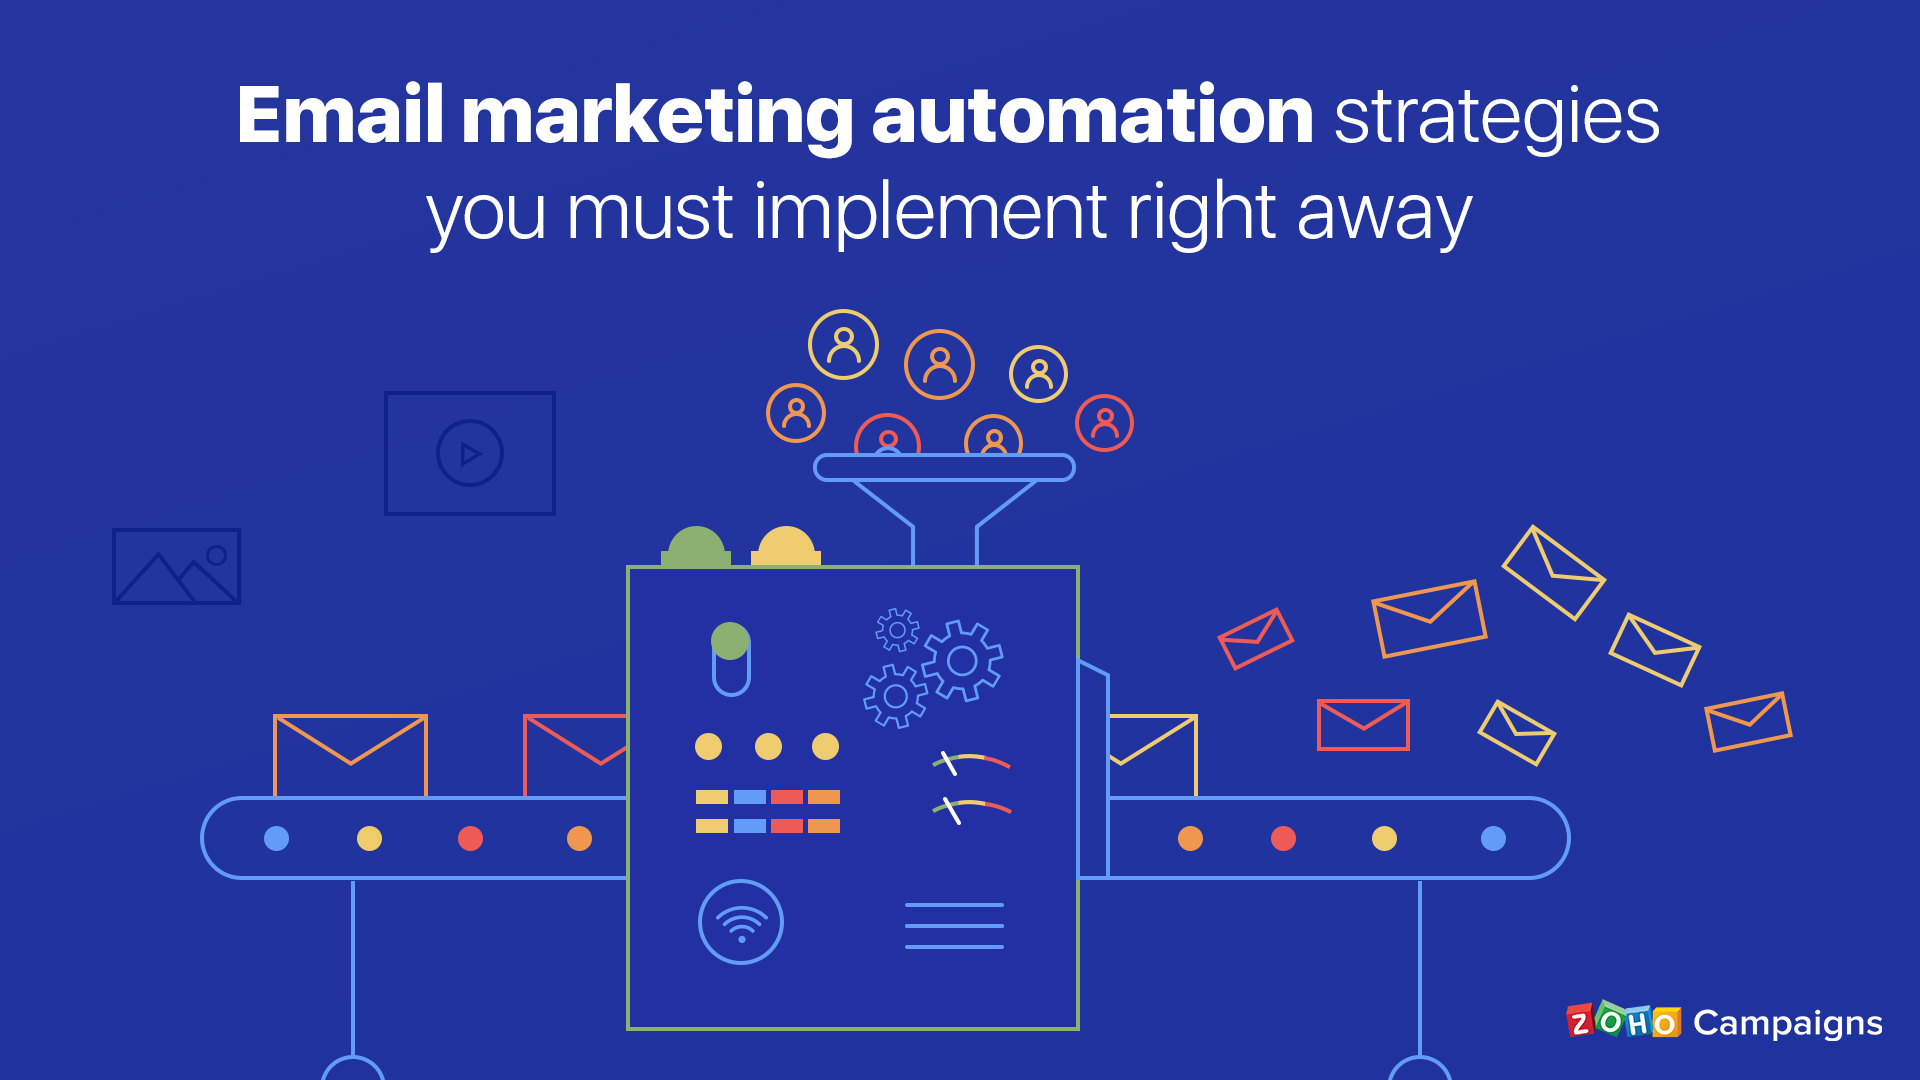 Email marketing automation strategies you must implement right away